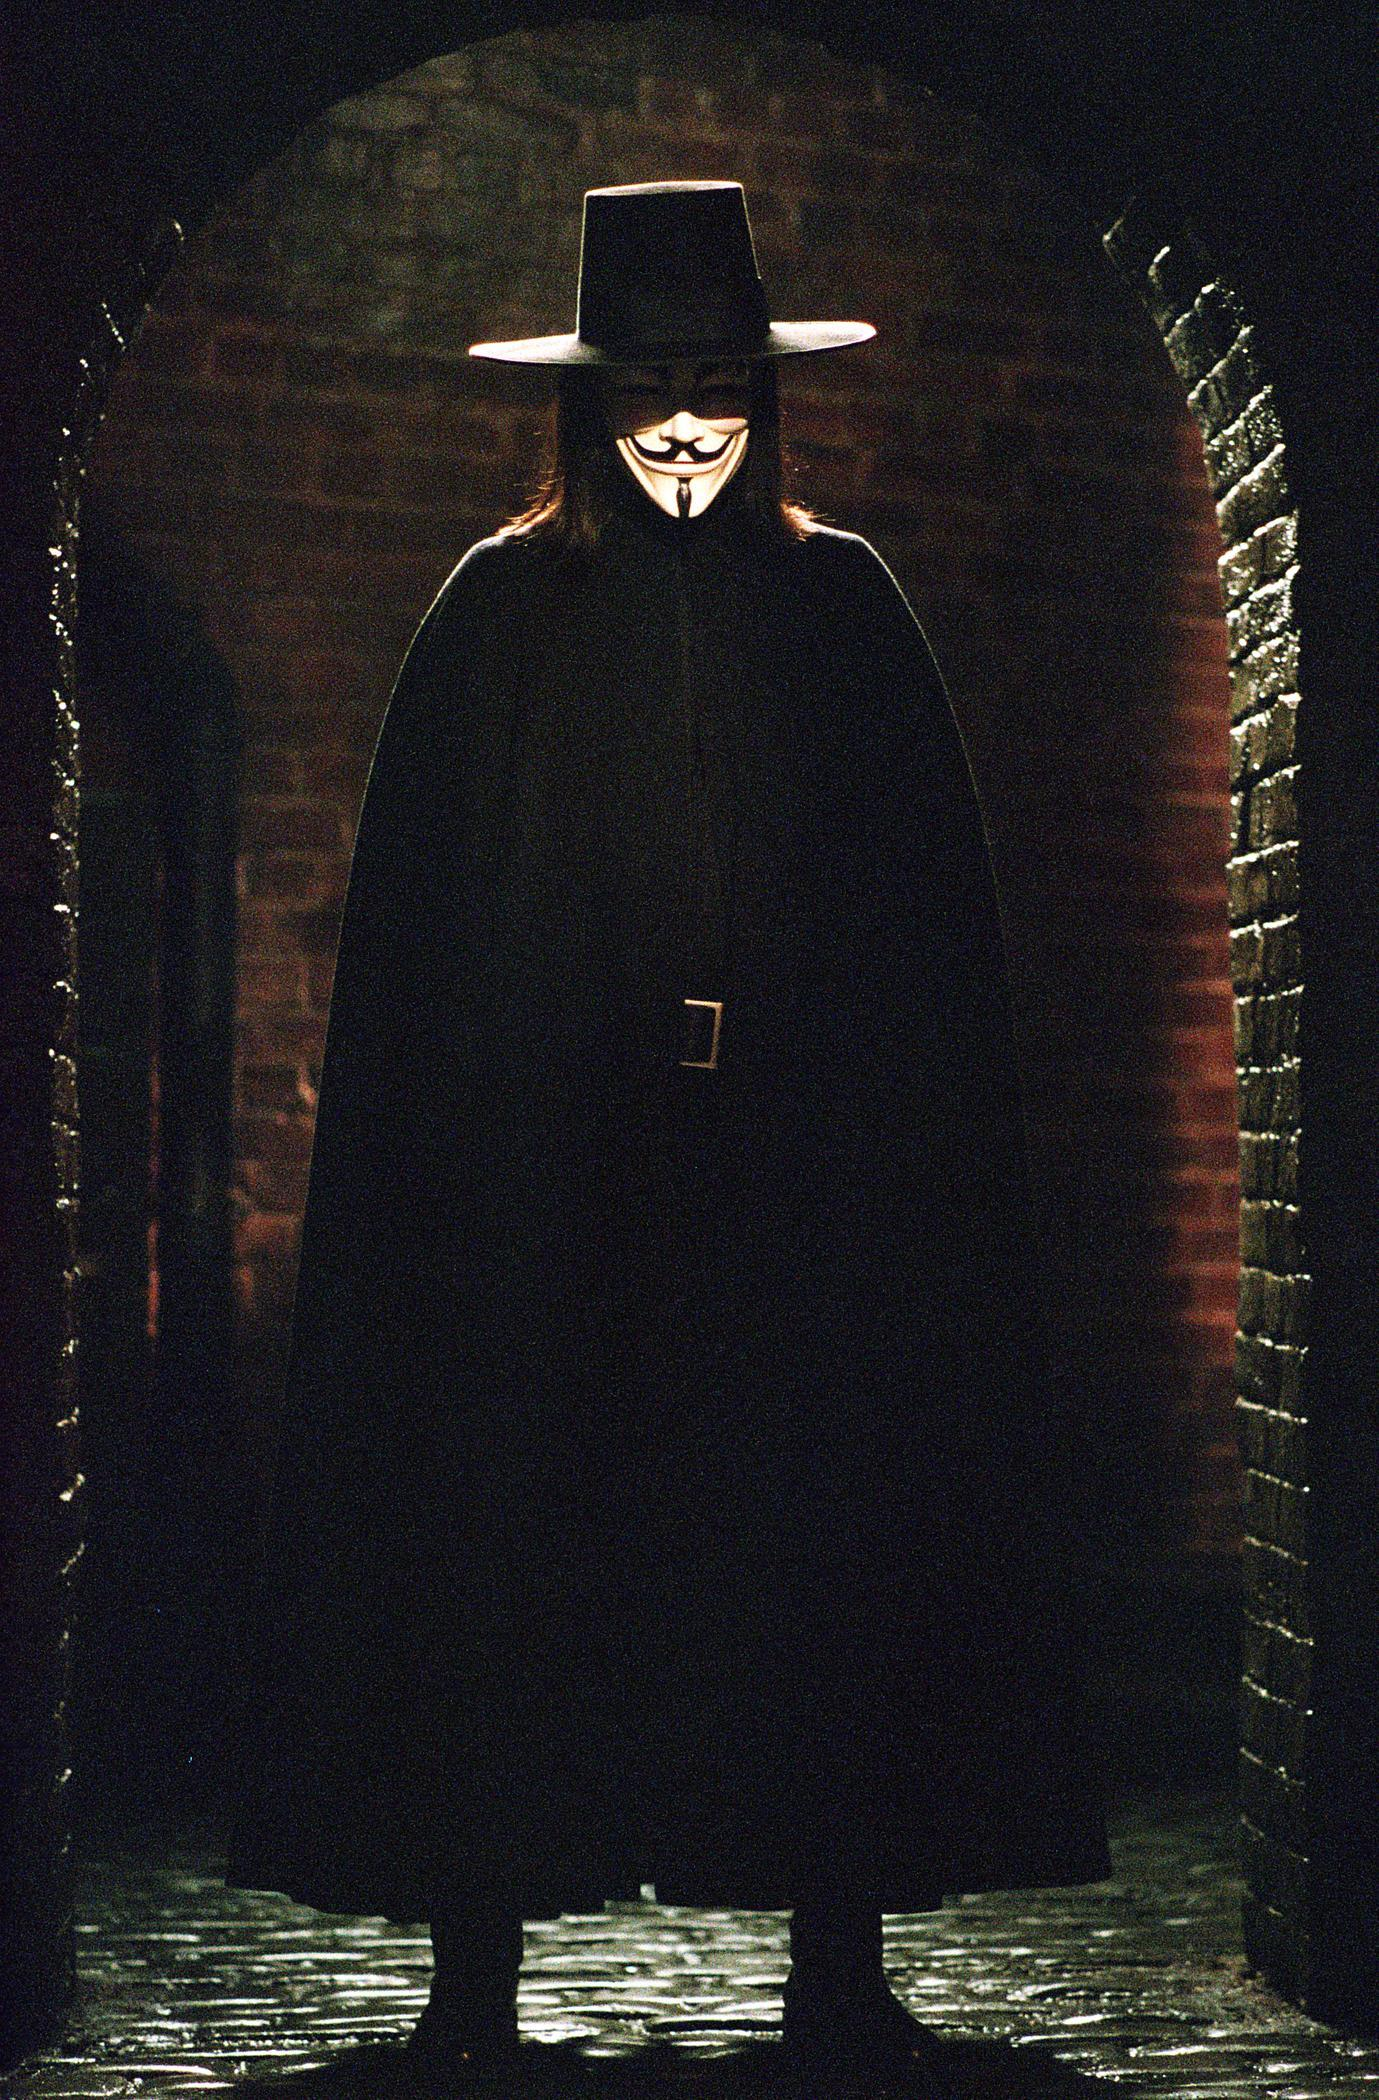 18709 download wallpaper Cinema, People, Actors, Men, V For Vendetta screensavers and pictures for free